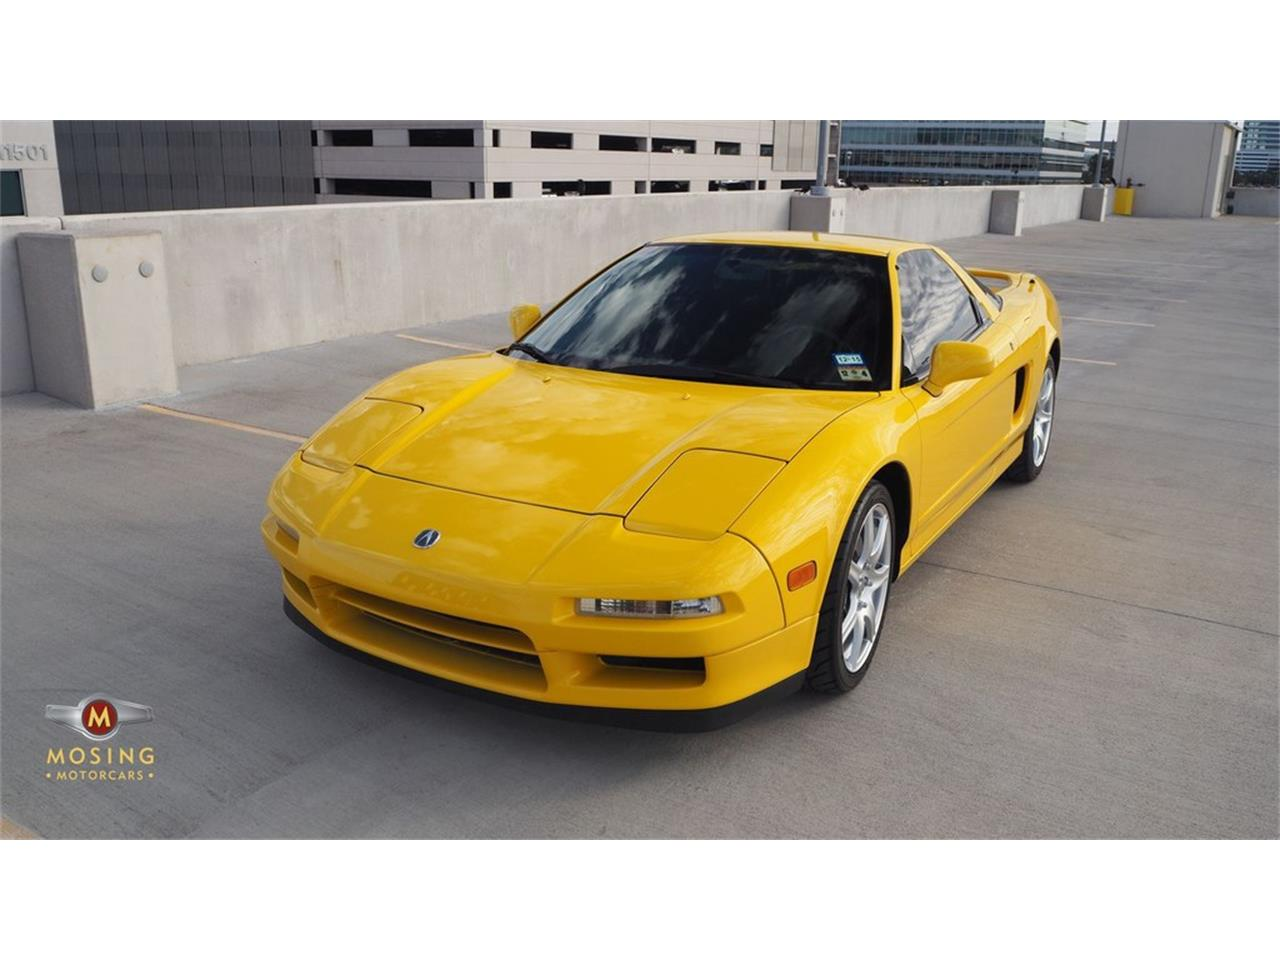 Acura NSX For Sale ClassicCarscom CC - 2000 acura nsx for sale